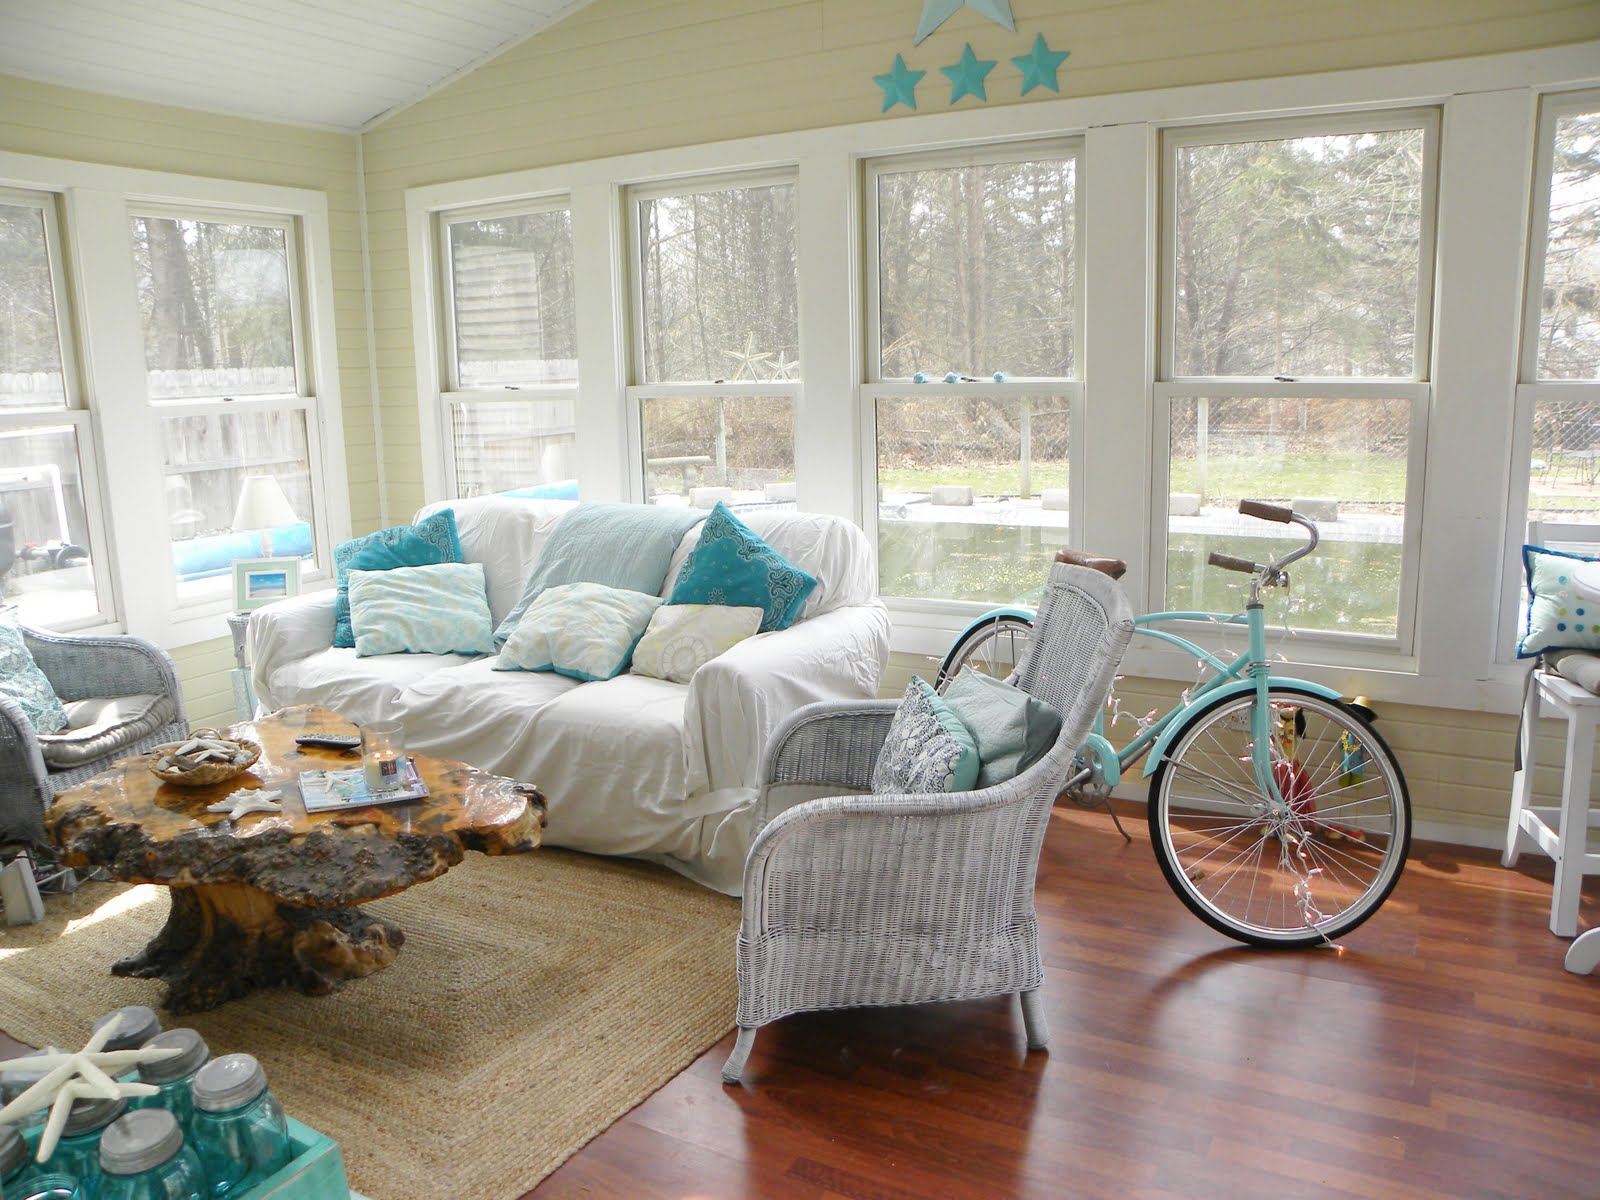 Simple daisy beach cottage design for Small beach house decorating ideas